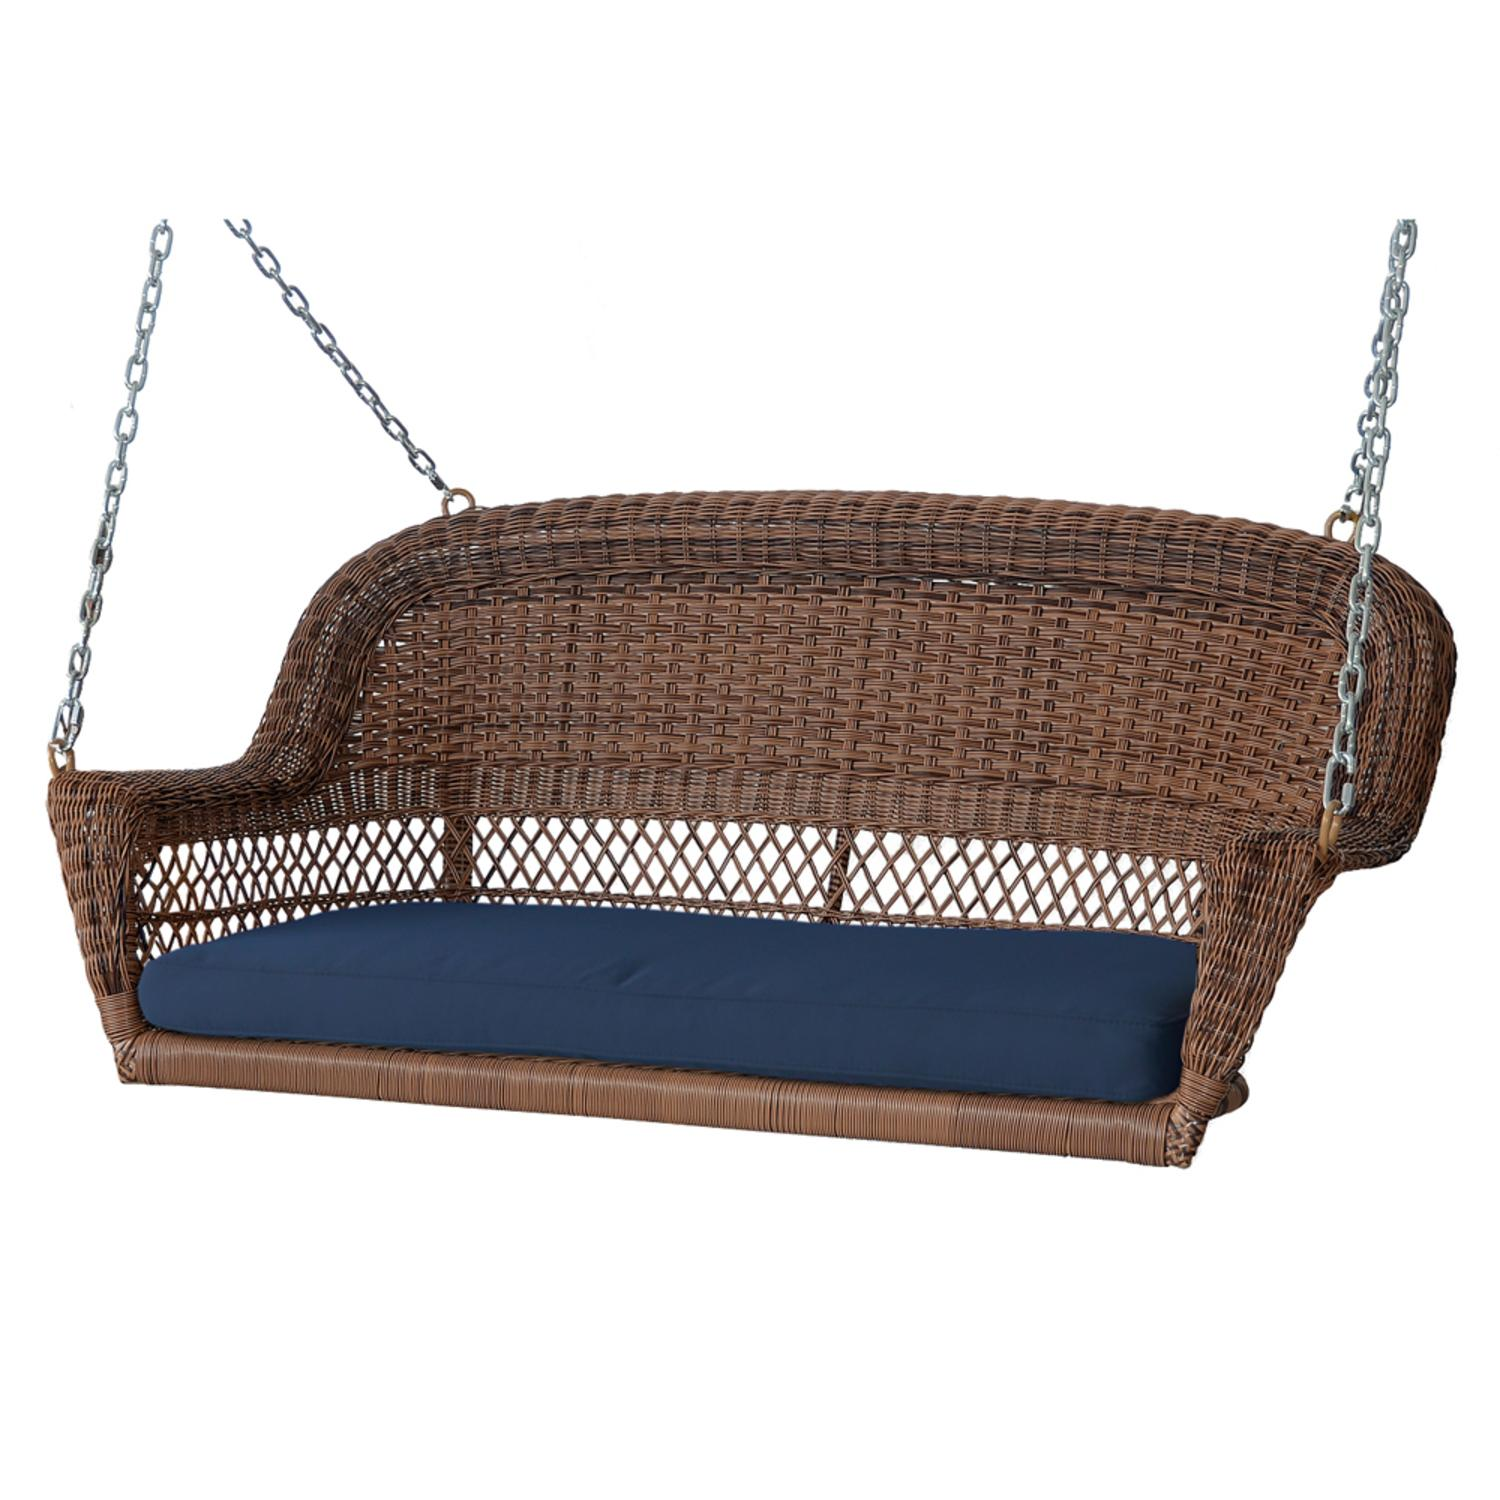 "51.5"" Hand Woven Honey Brown Resin Wicker Outdoor Porch Swing with Blue Cushion by Porch Swings"